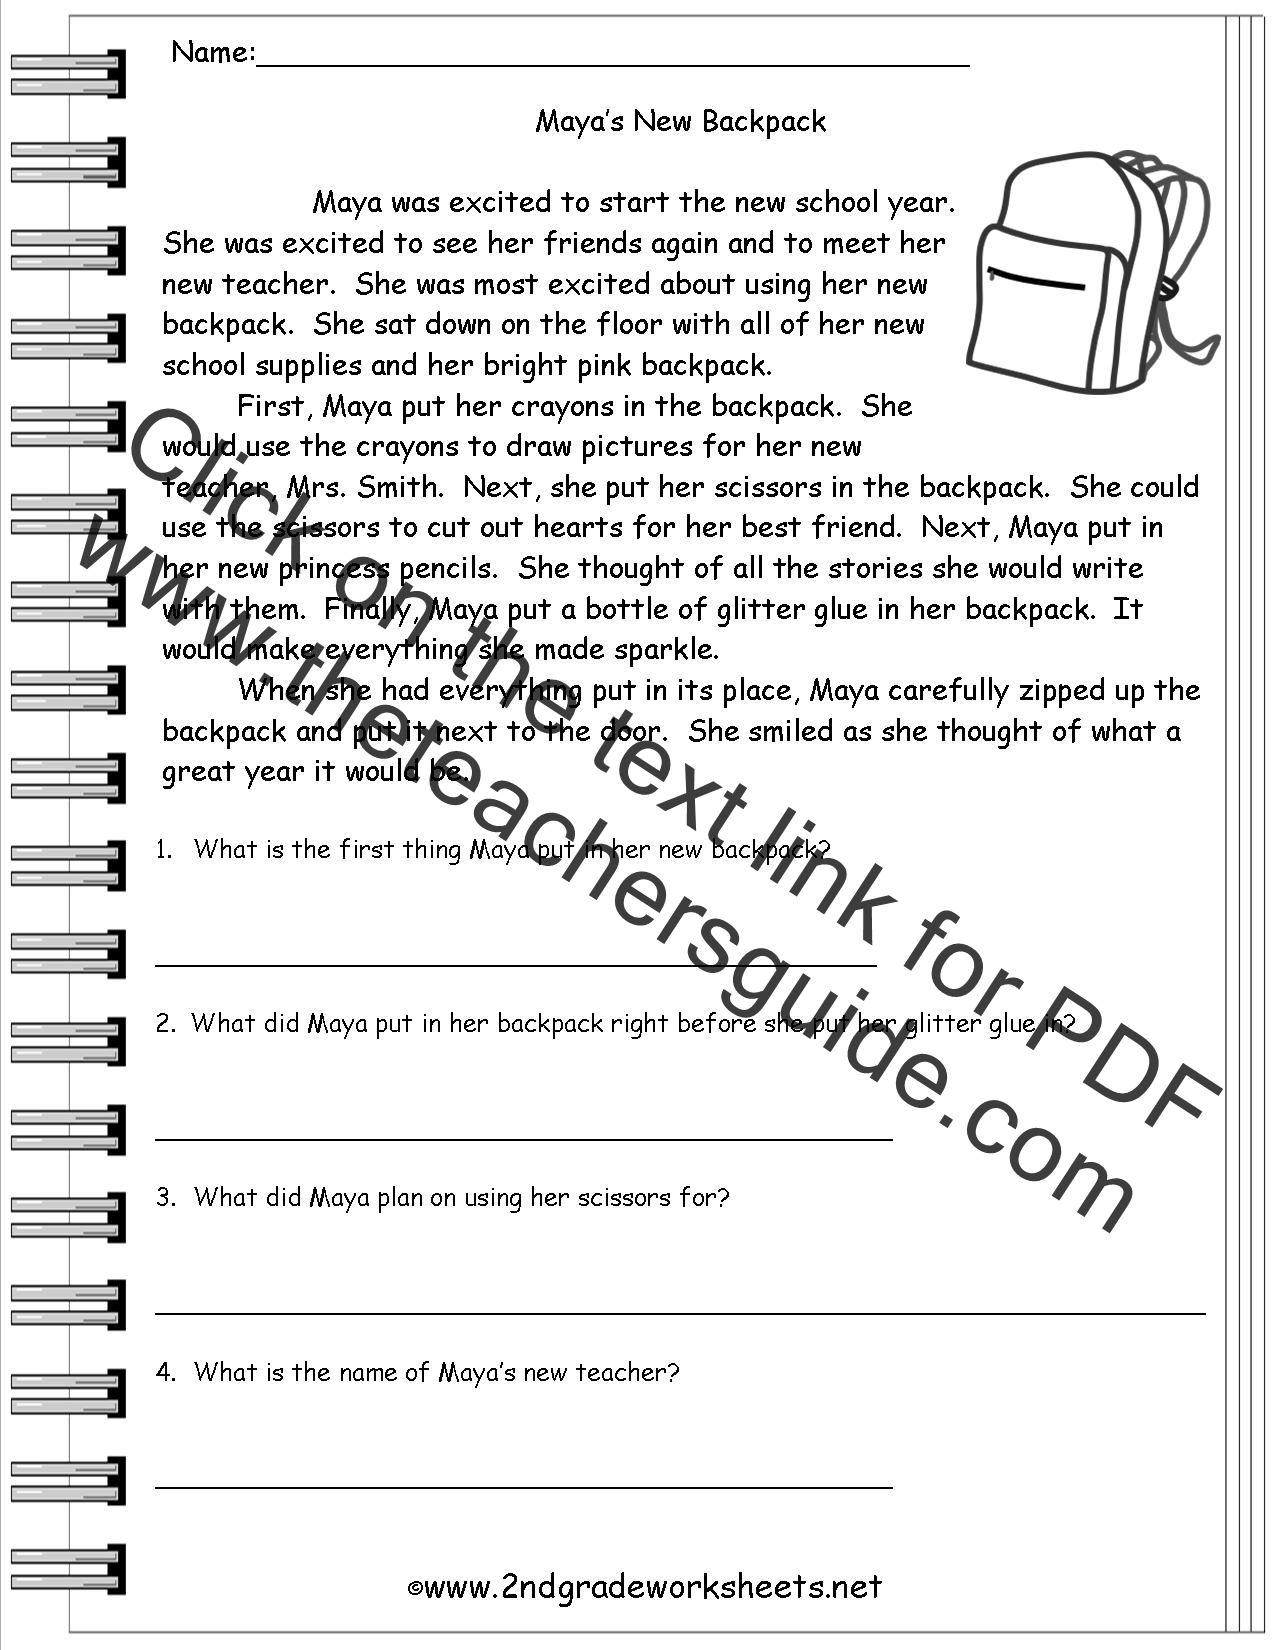 worksheet Reading Comprehension 5th Grade Worksheets reading worksheeets worksheets